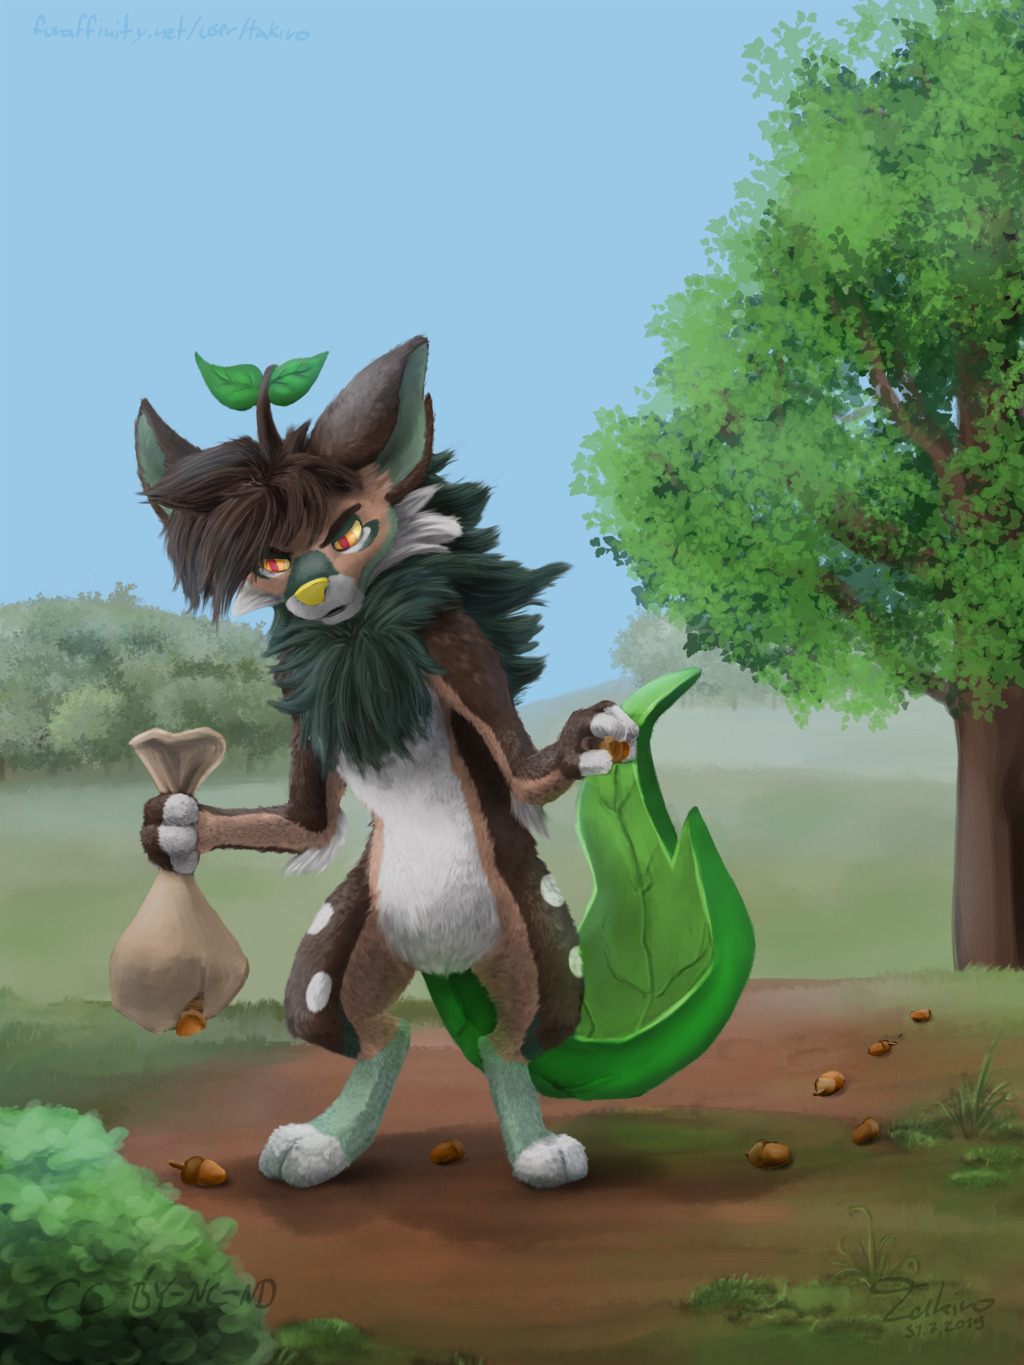 Most recent image: Crap. Damn bag (Artfight: Sprout.685520)